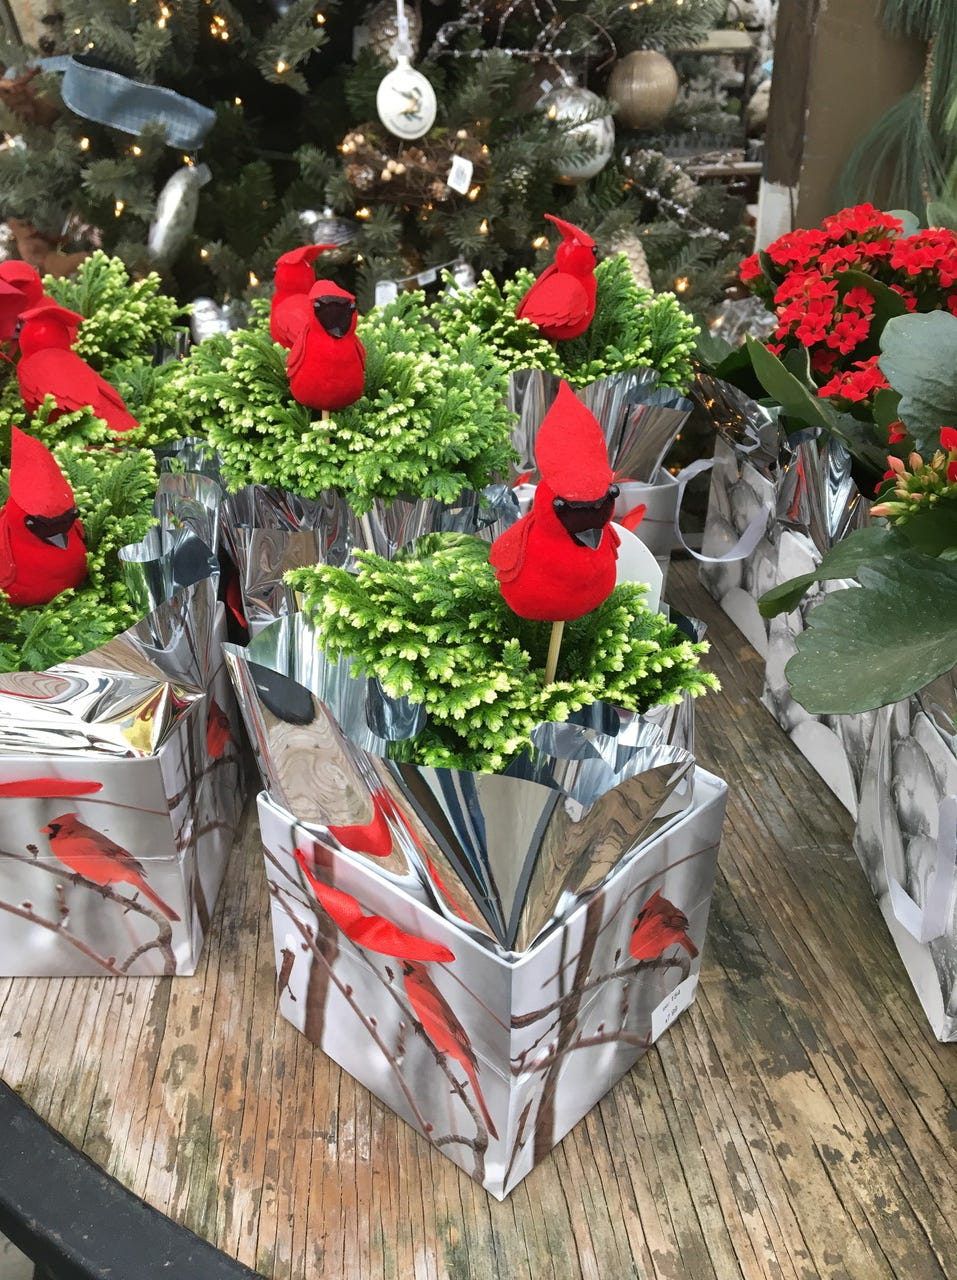 Red cardinals adorn frosty fern already wrapped for a festive gift.